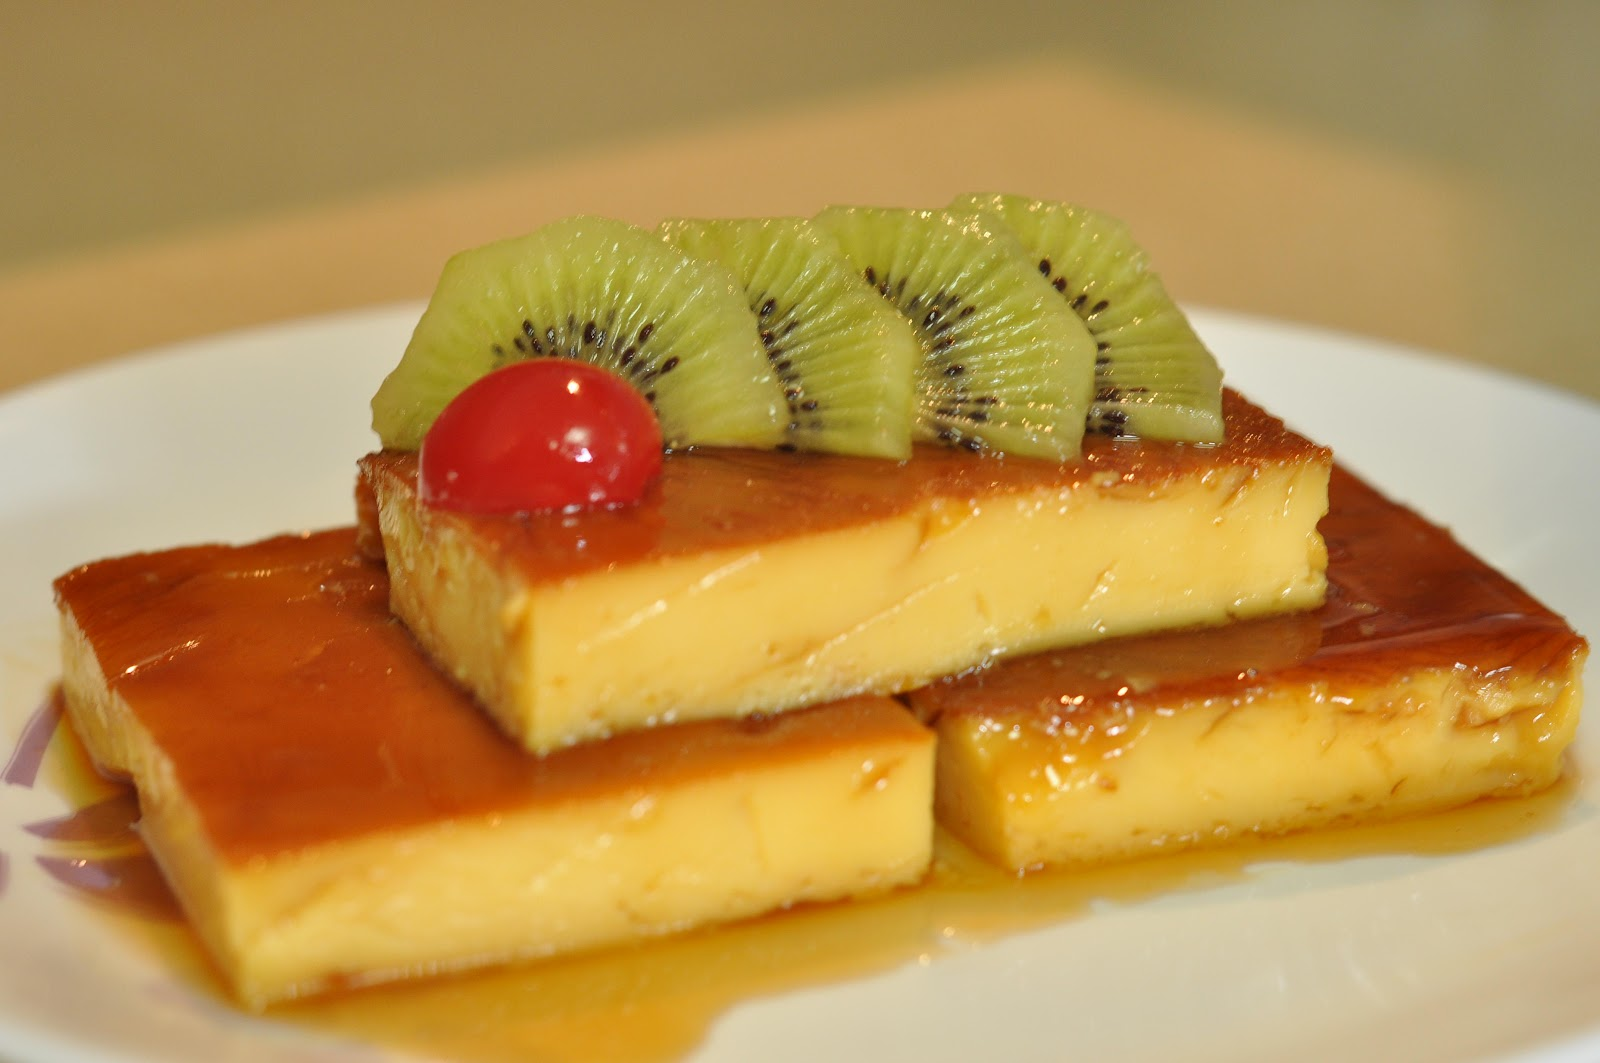 Jane's Kitchen: Baked Leche Flan